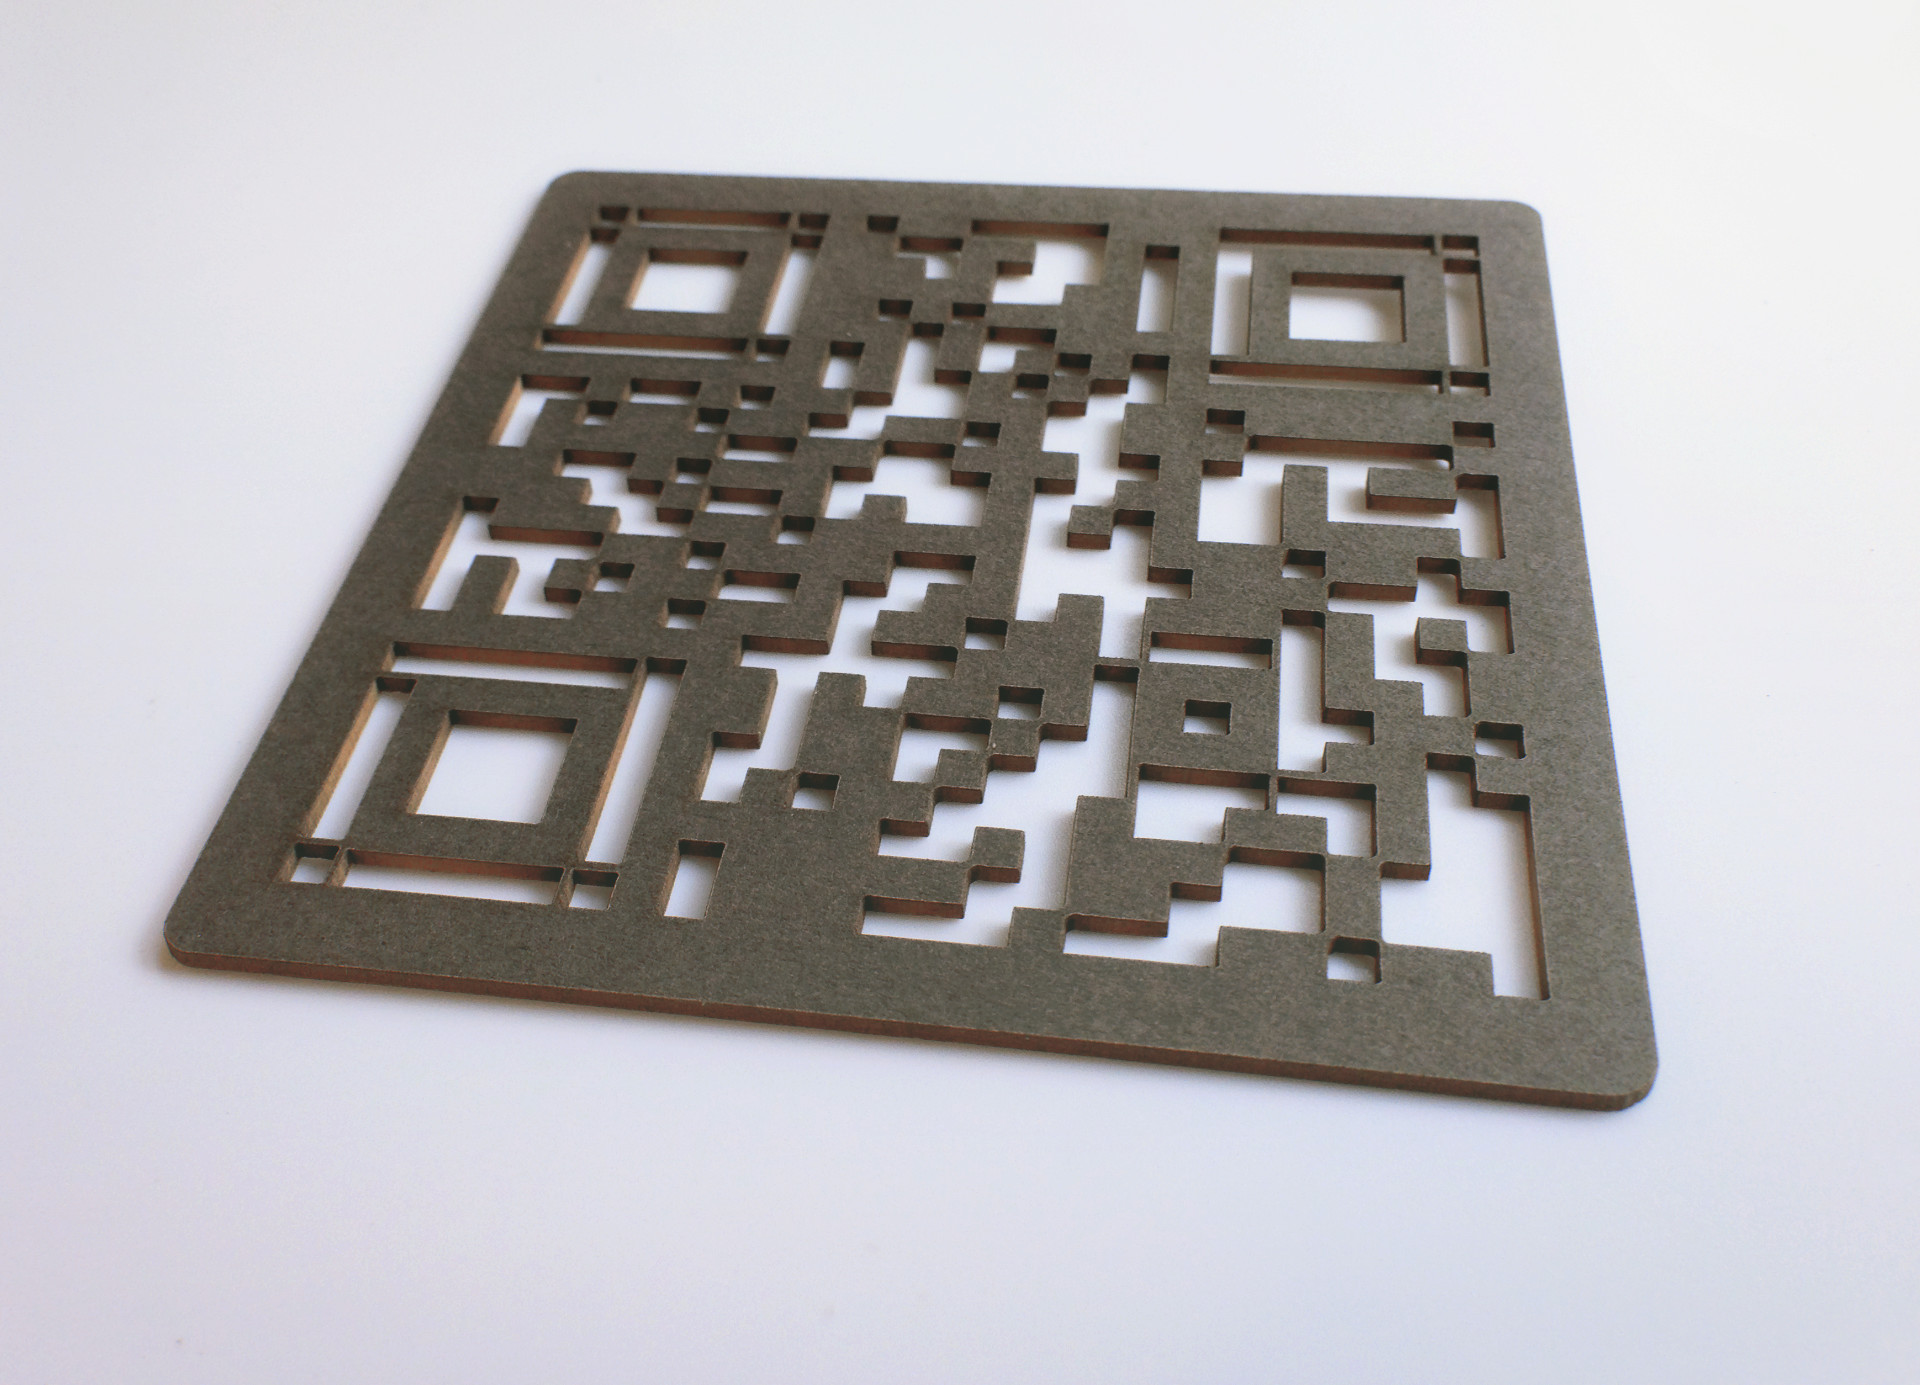 mountboard-laser-cut-qr-coaster